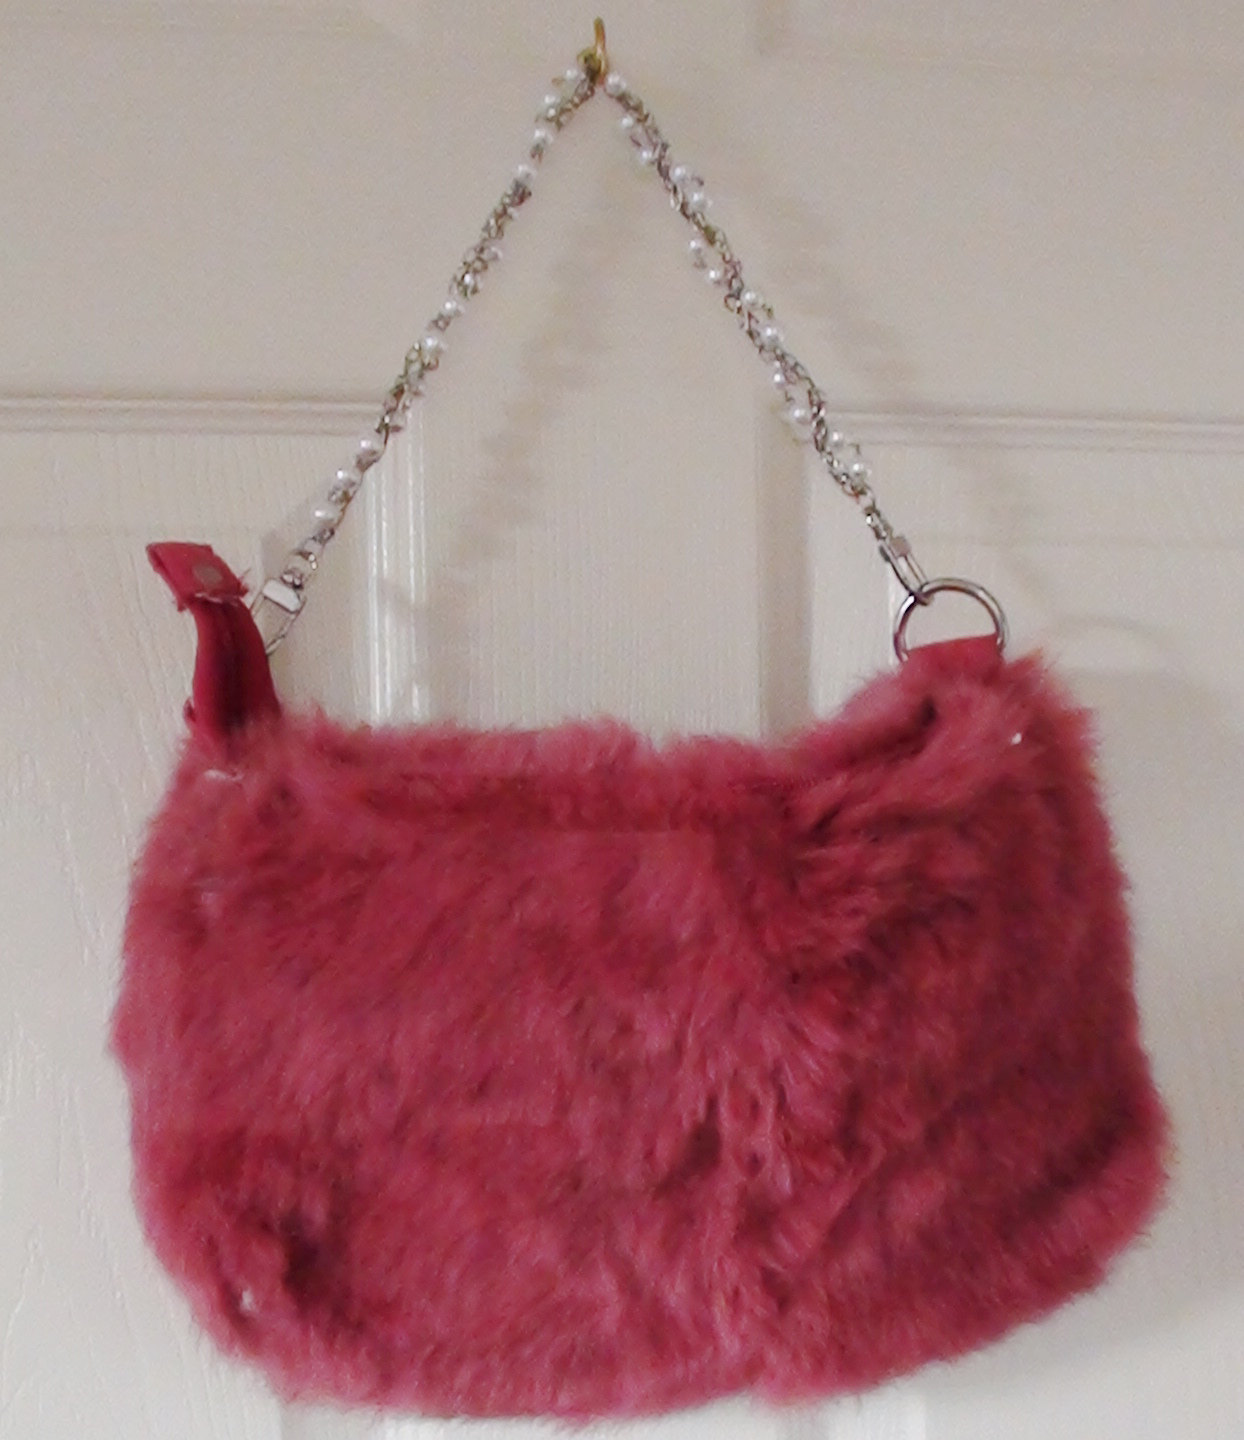 Genuine Fur Pink Handbag With Faux Pearls Strand Handle in Excellent Condition Retired Design 1990s